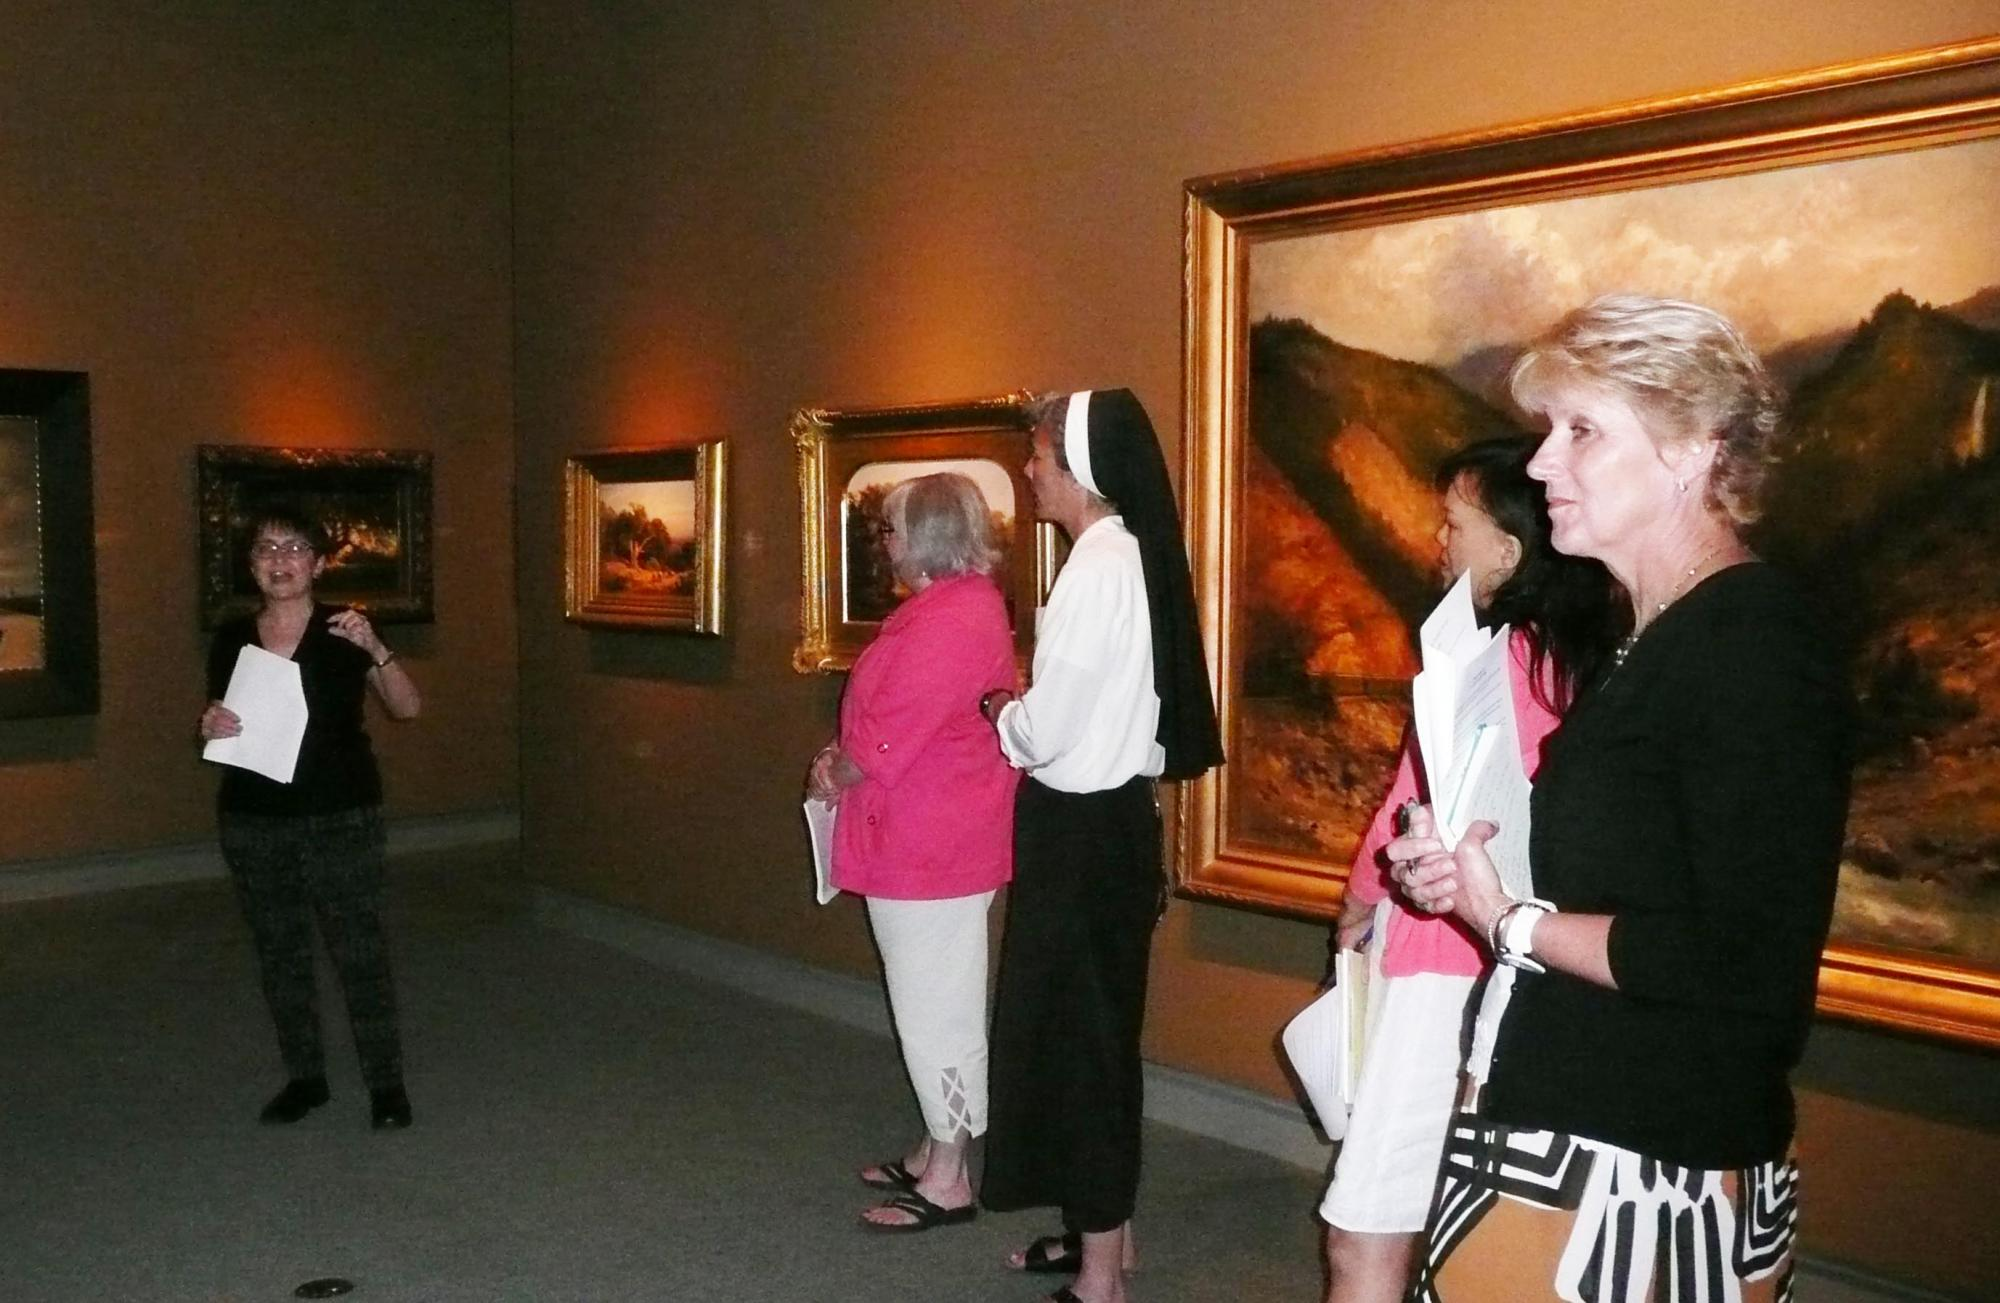 Museum Director Carrie Brewster demonstrated her knowledge of how to hang artworks.